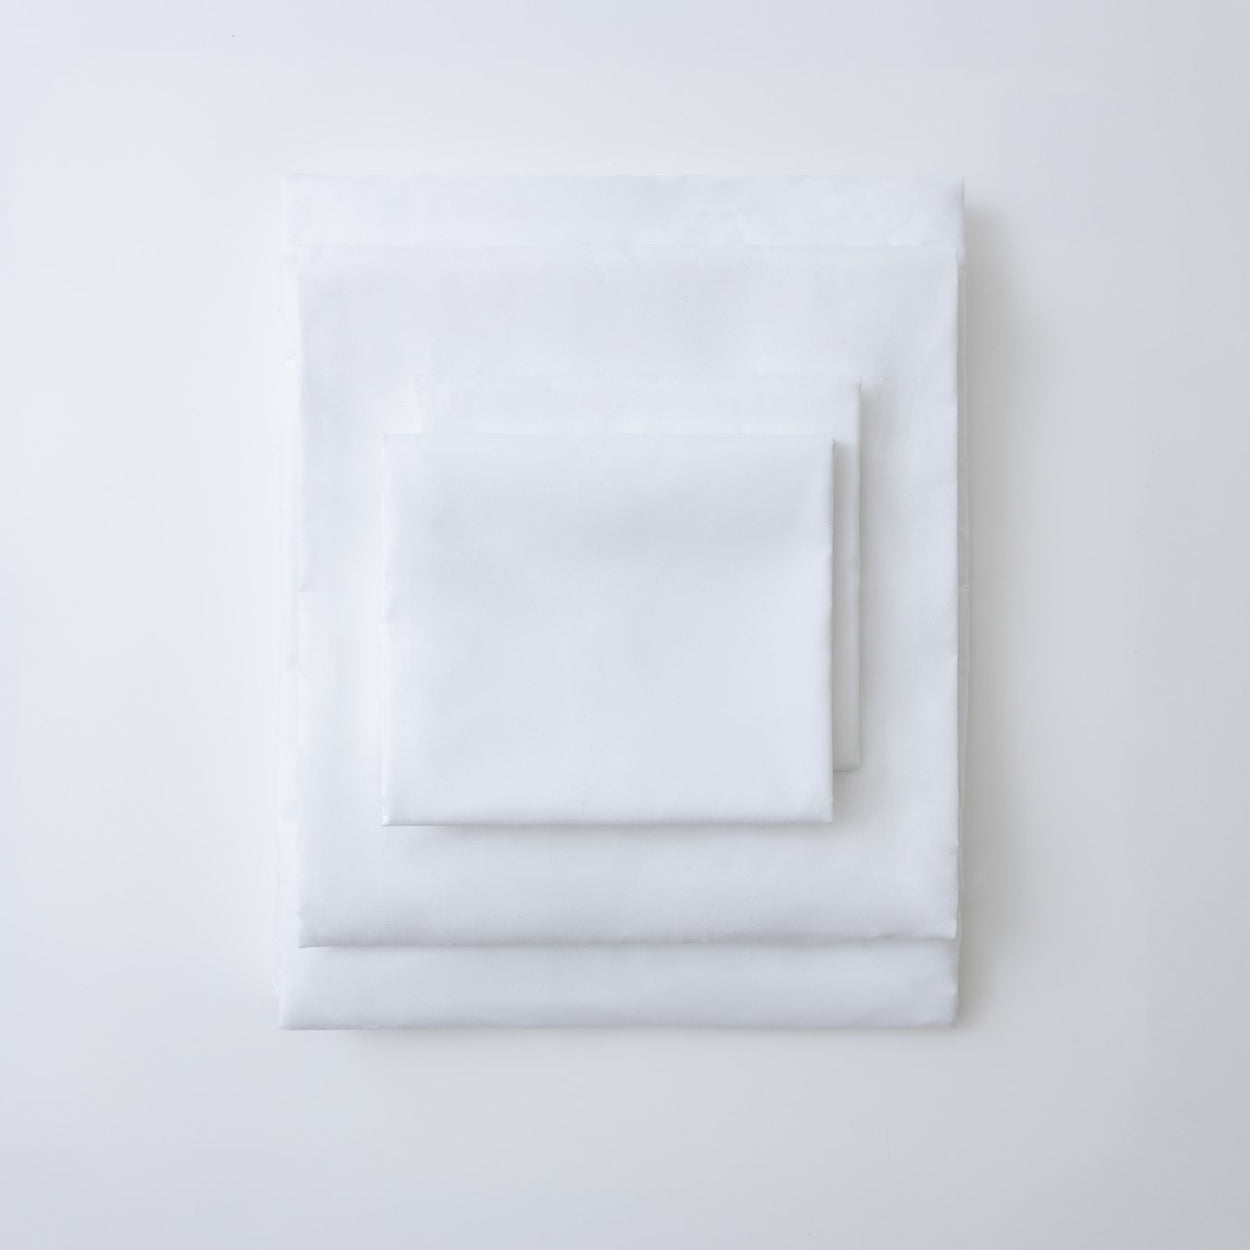 Kite Linens Stay-Tucked Design: Our sheets come in a complete set (fitted sheet, Stay-Tucked top sheet, & two pillow cases.